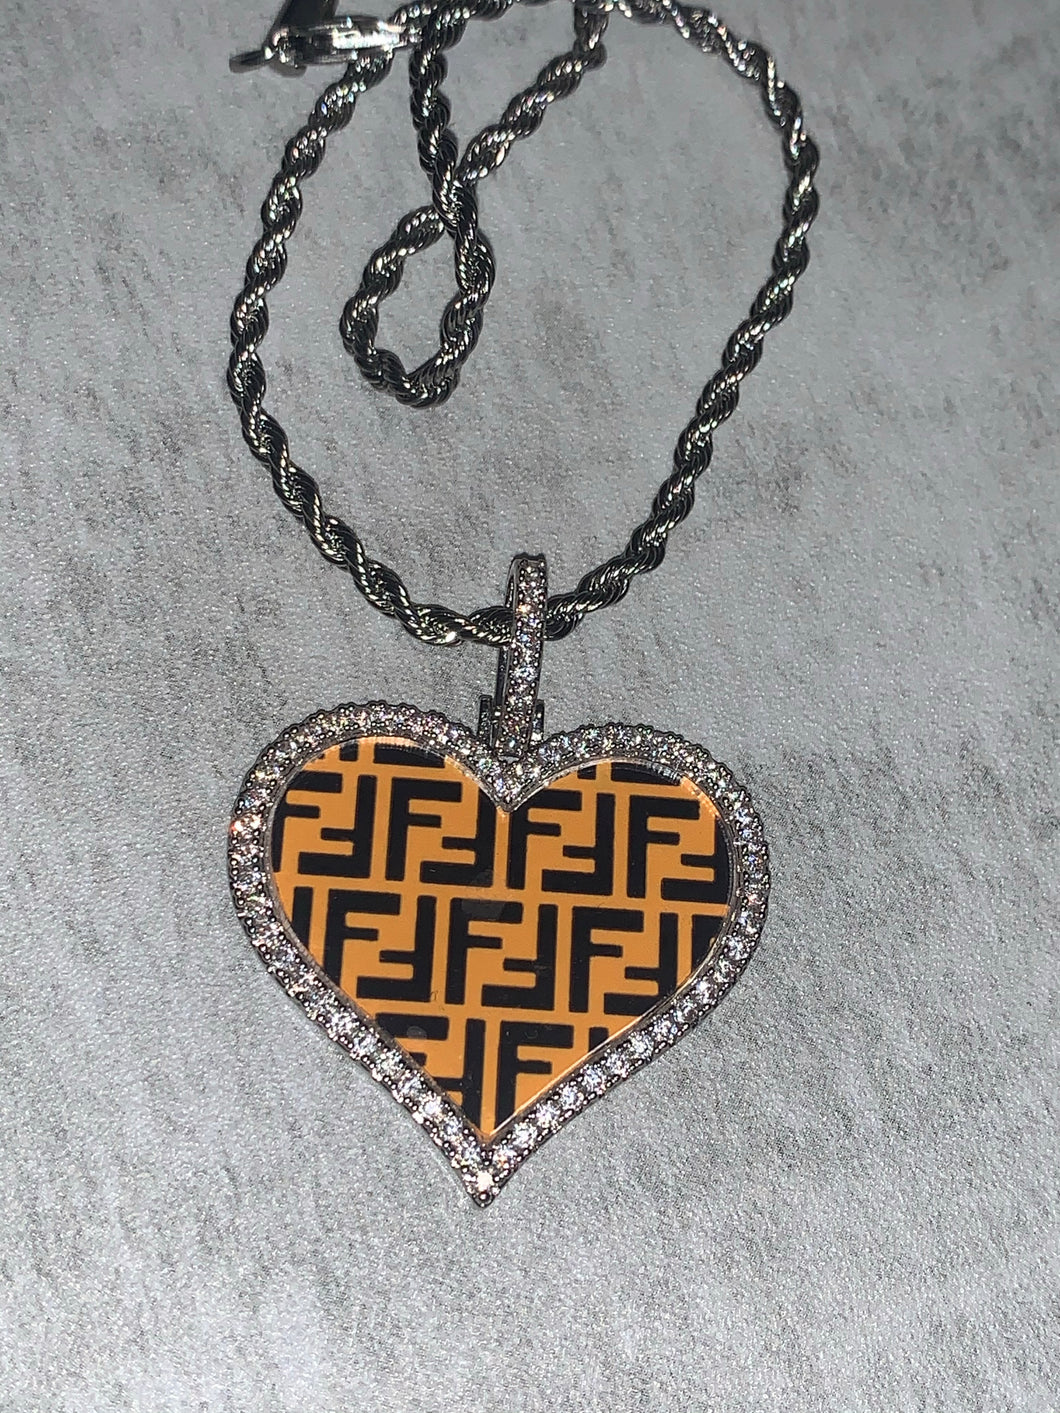 Custom fendi pendant with rope chain